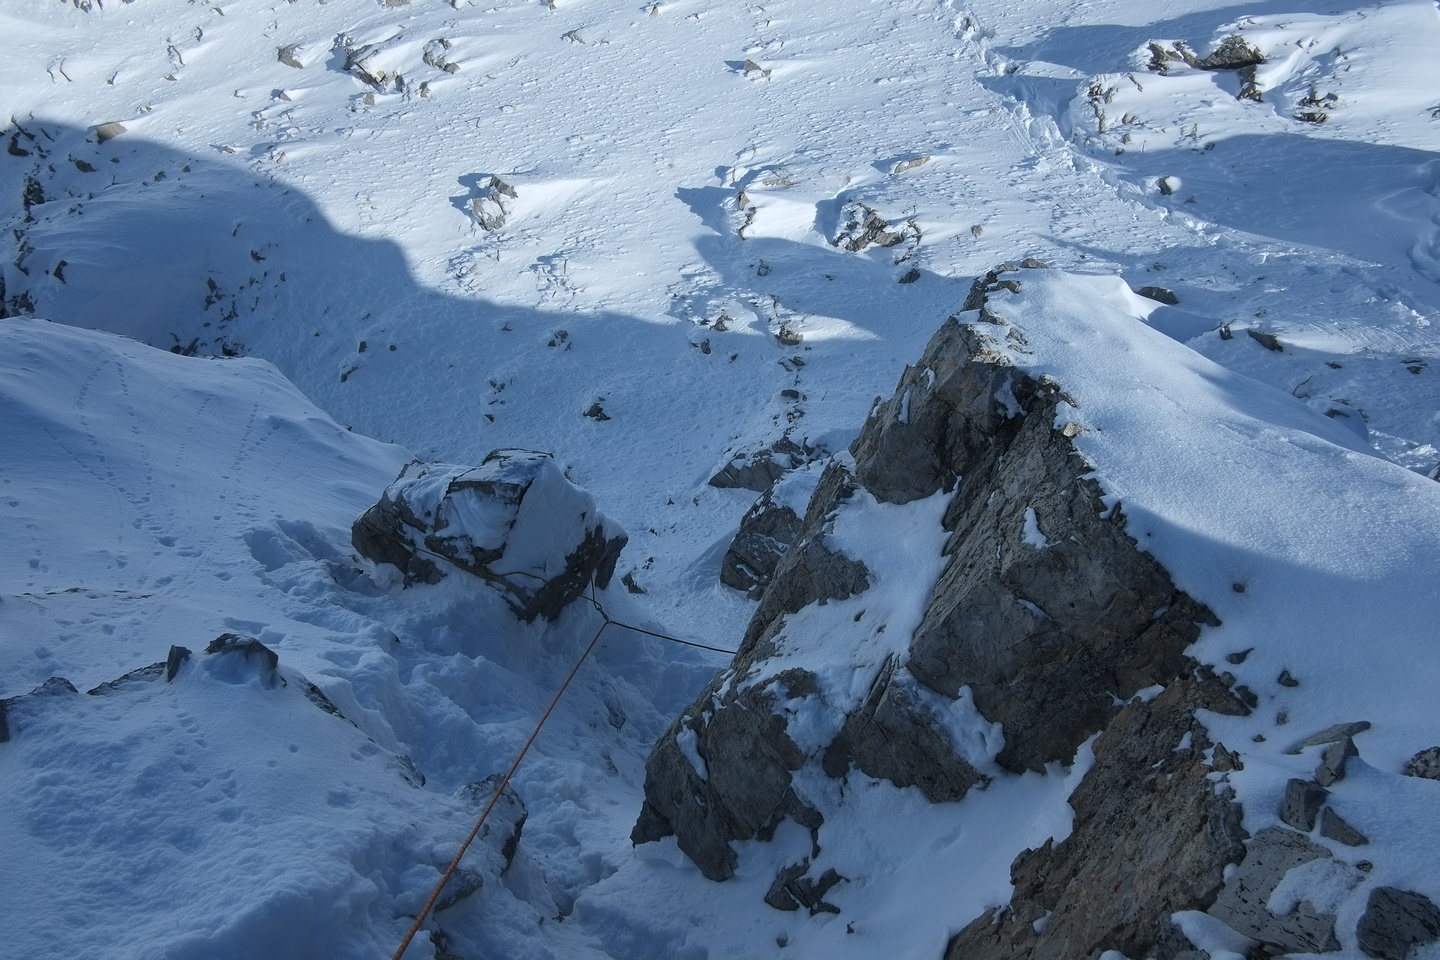 Descending to the crux.